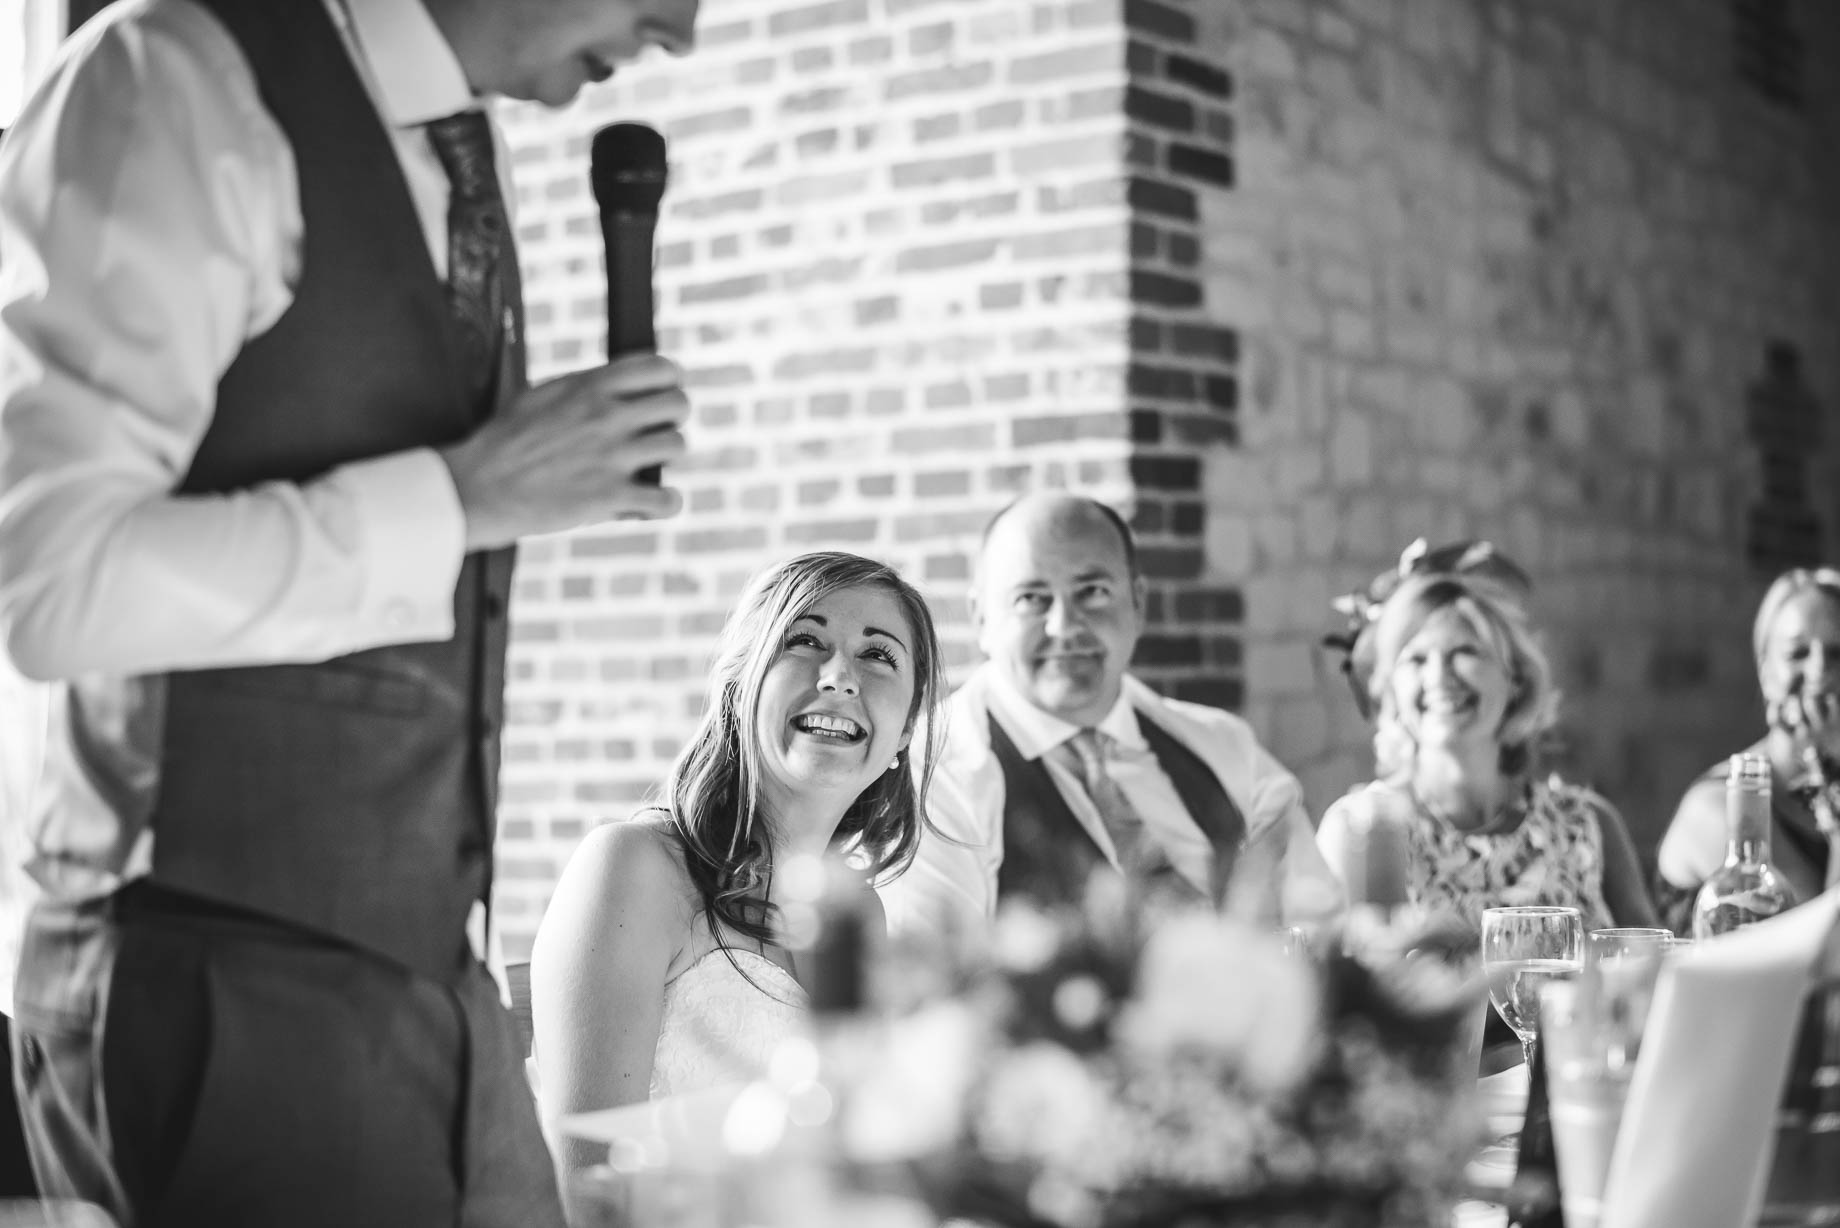 Bury Court Barn wedding photography - Guy Collier - Kirsty and Lewis (132 of 150)